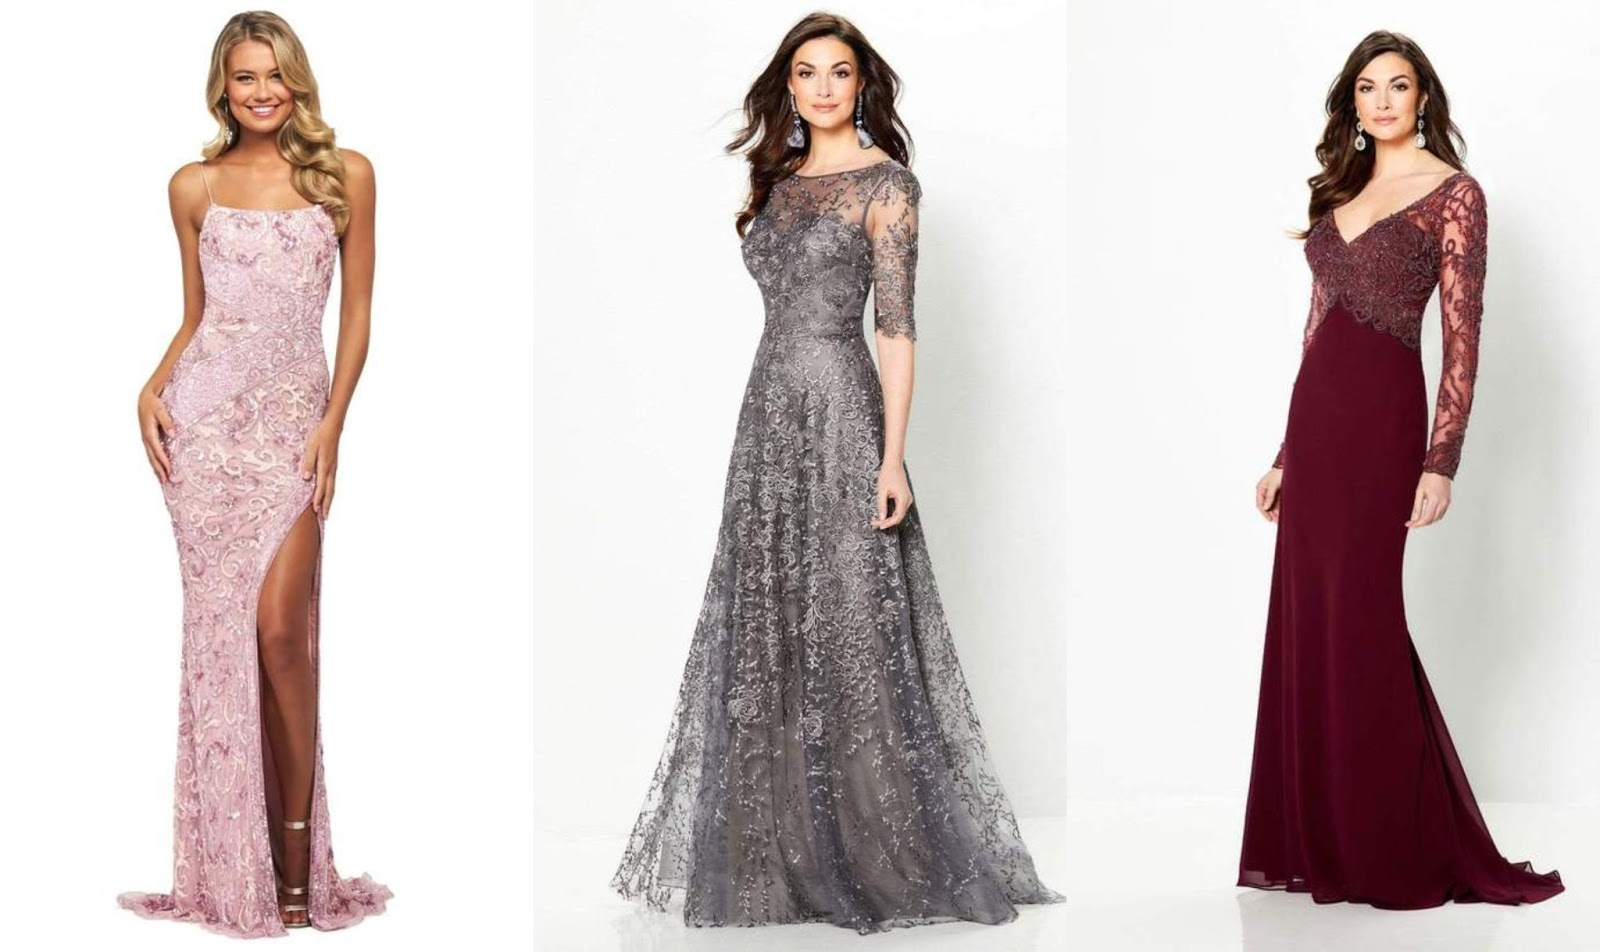 Top 3 Myths About Prom Dresses Debunked For Your Pretty Appearance